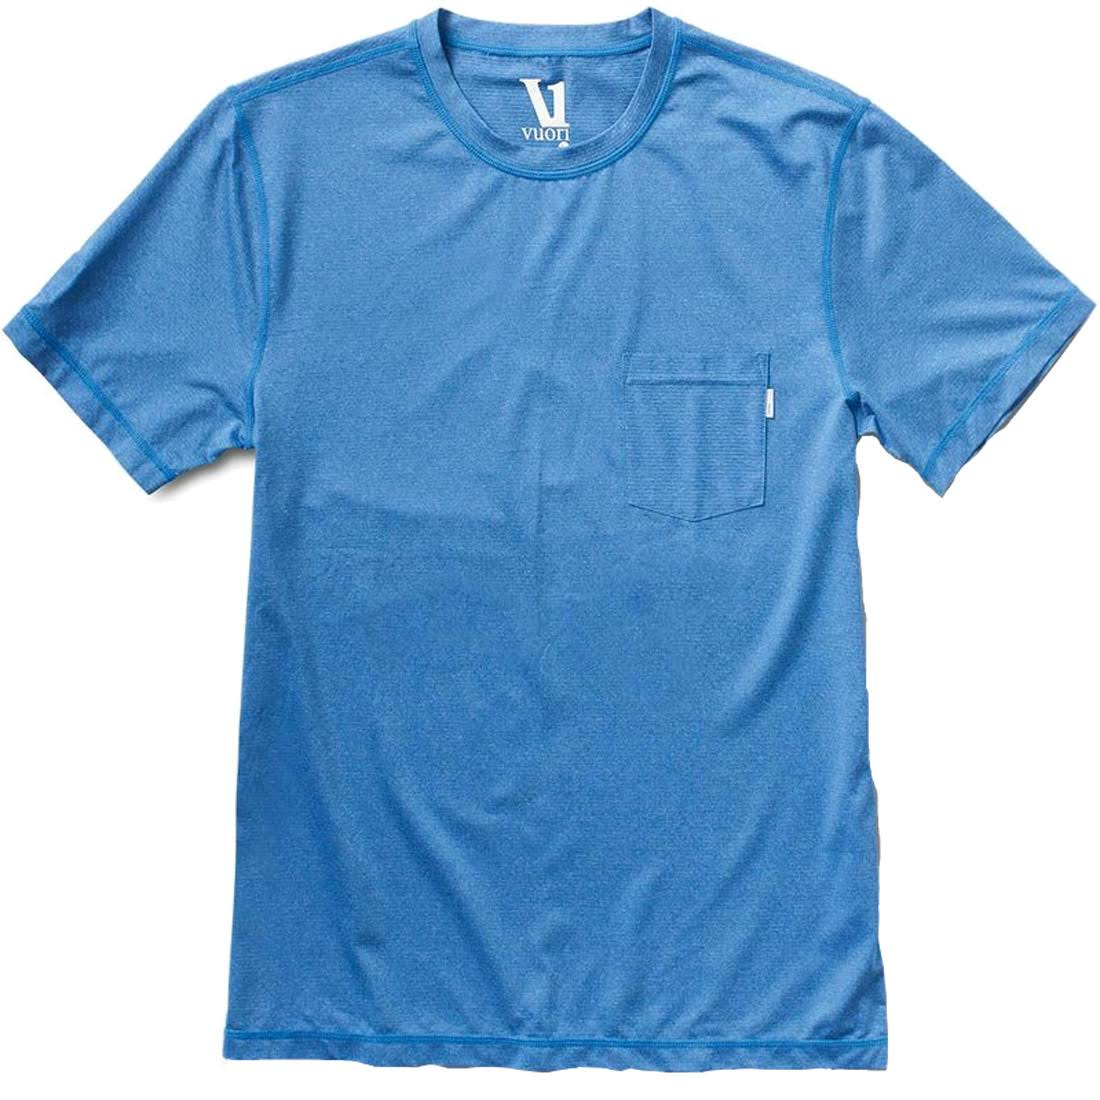 Vuori Men's Tradewind Performance Tee Azure XL